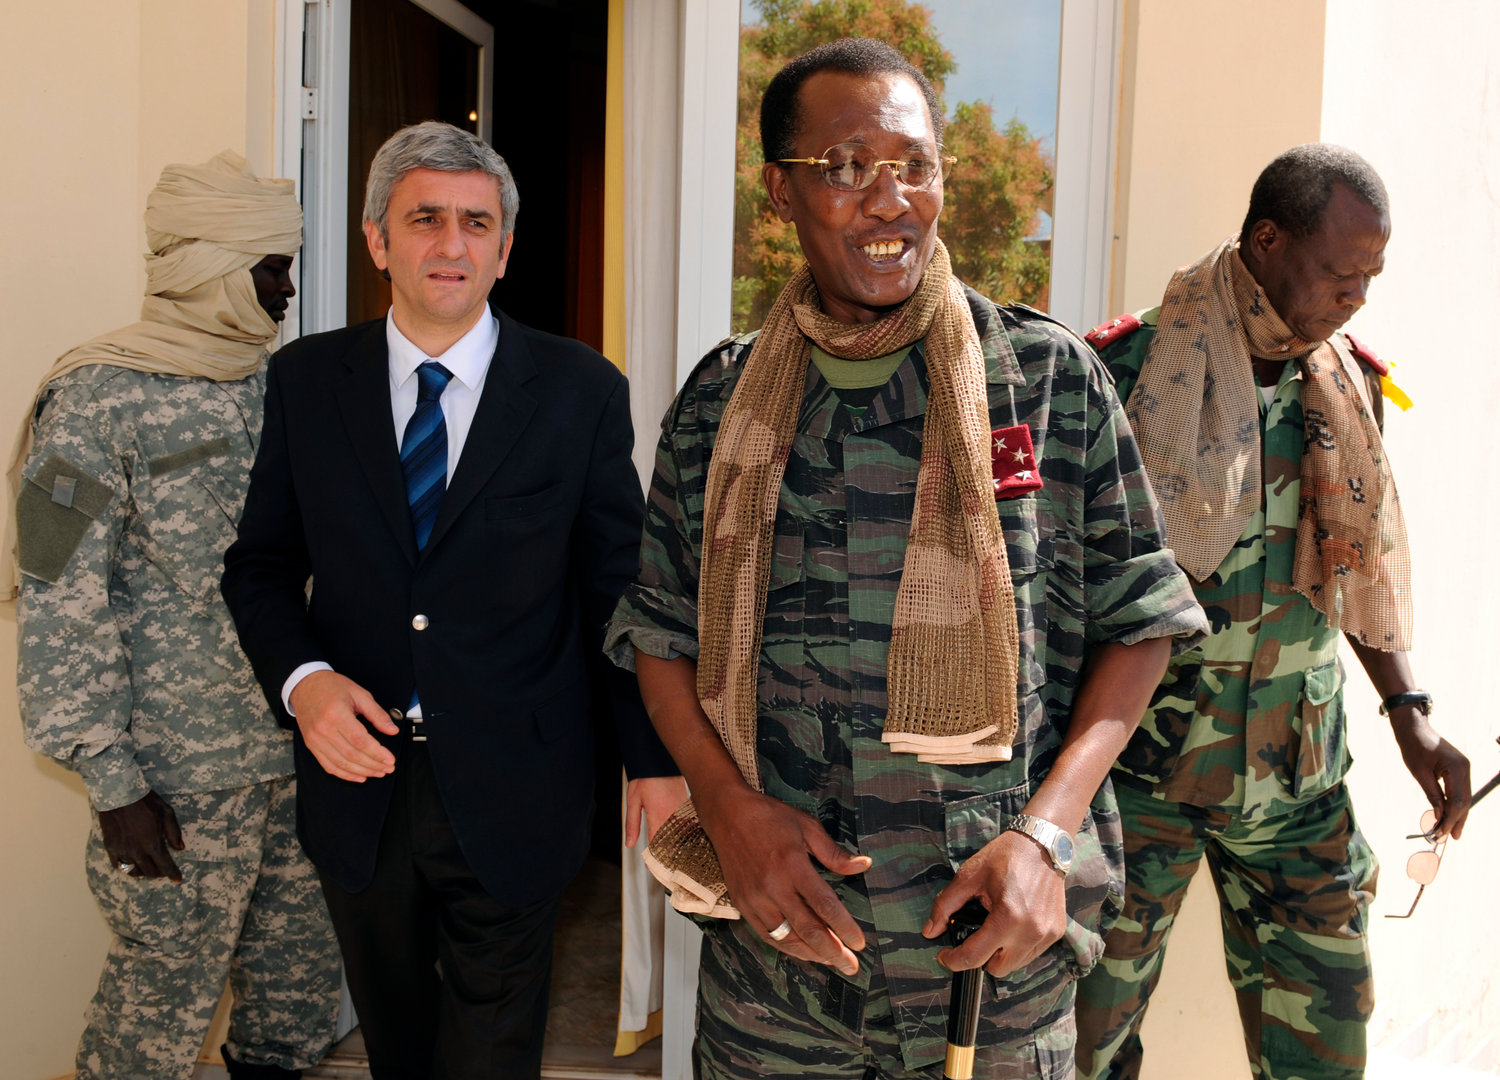 FILE - In this Wednesday, Feb. 6, 2008 file photo, Chad's President Idriss Deby Itno, center-right, meets with French Defense Minister Herve Morin, center-left, in N'Djamena, Chad. Deby, who ruled the central African nation for more than three decades, was killed on the battlefield Tuesday, April 20, 2021 in a fight against rebels, the country's top military commander announced on national television and radio. (Pascal Guyot/Pool Photo via AP, File)